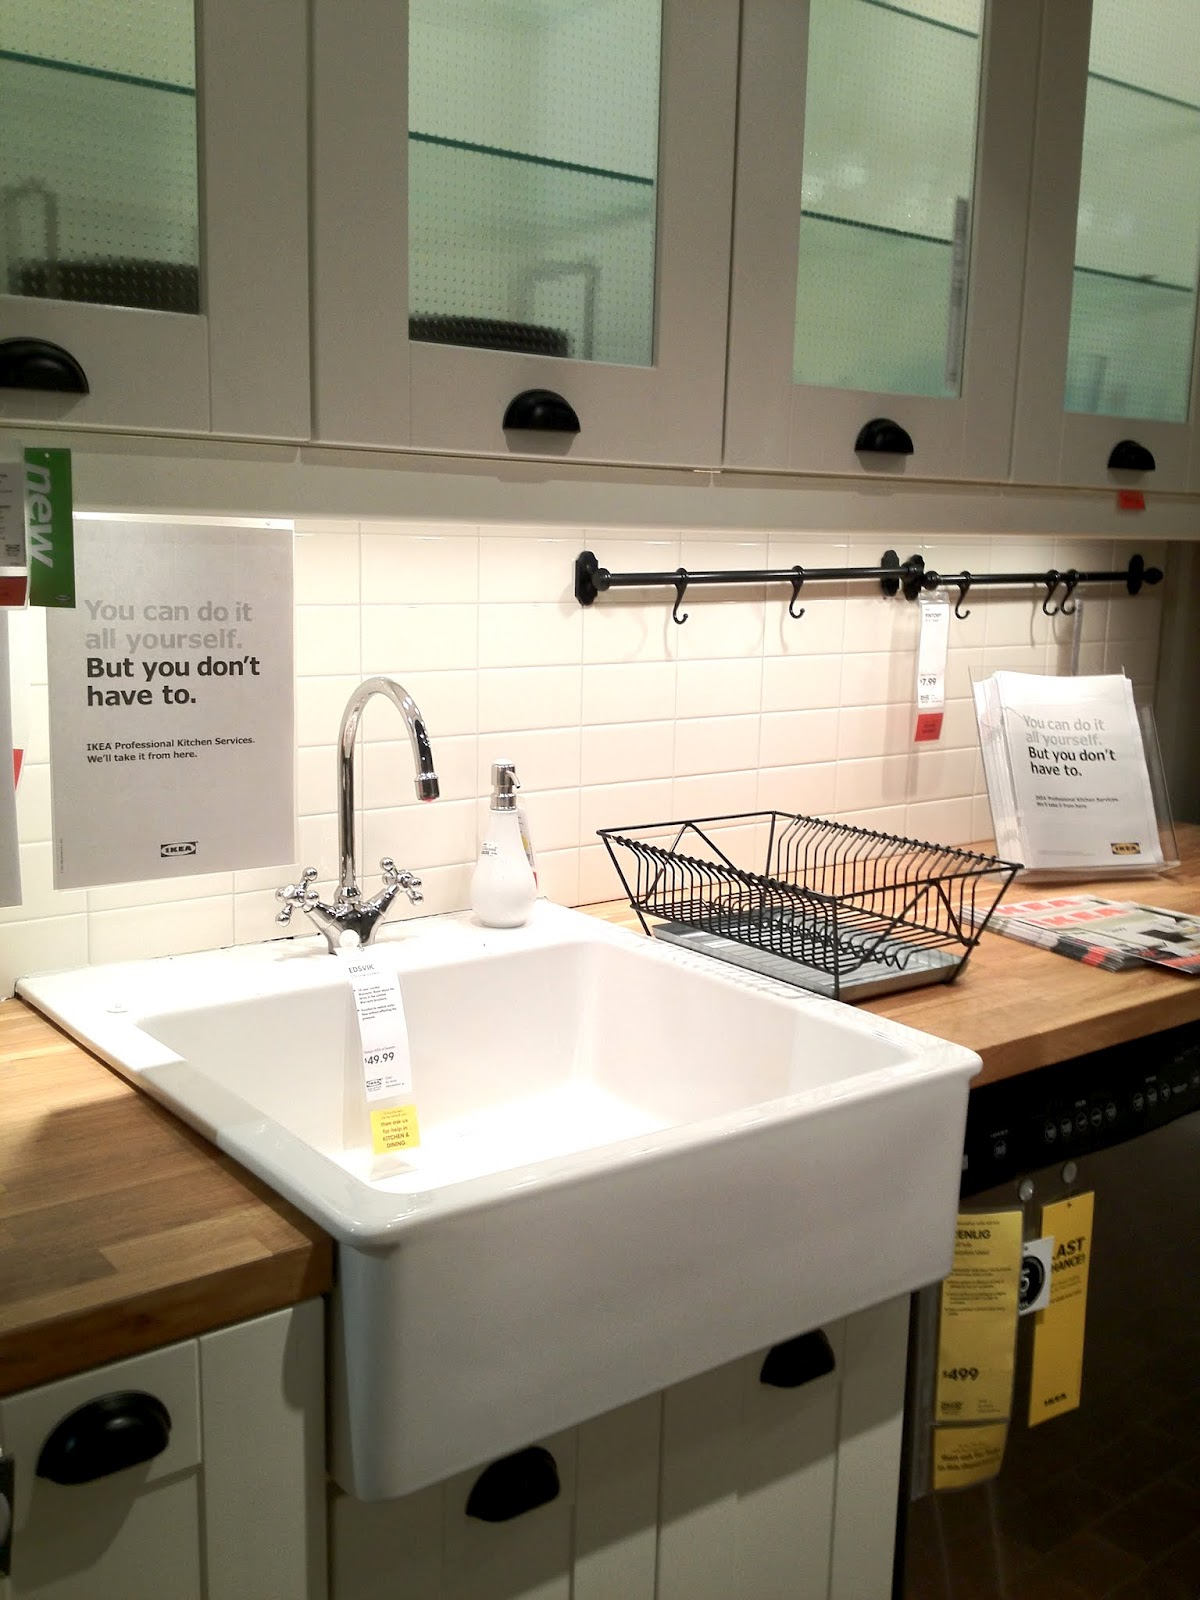 no touch kitchen faucet swags farm sink ikea: its special characteristics and materials ...